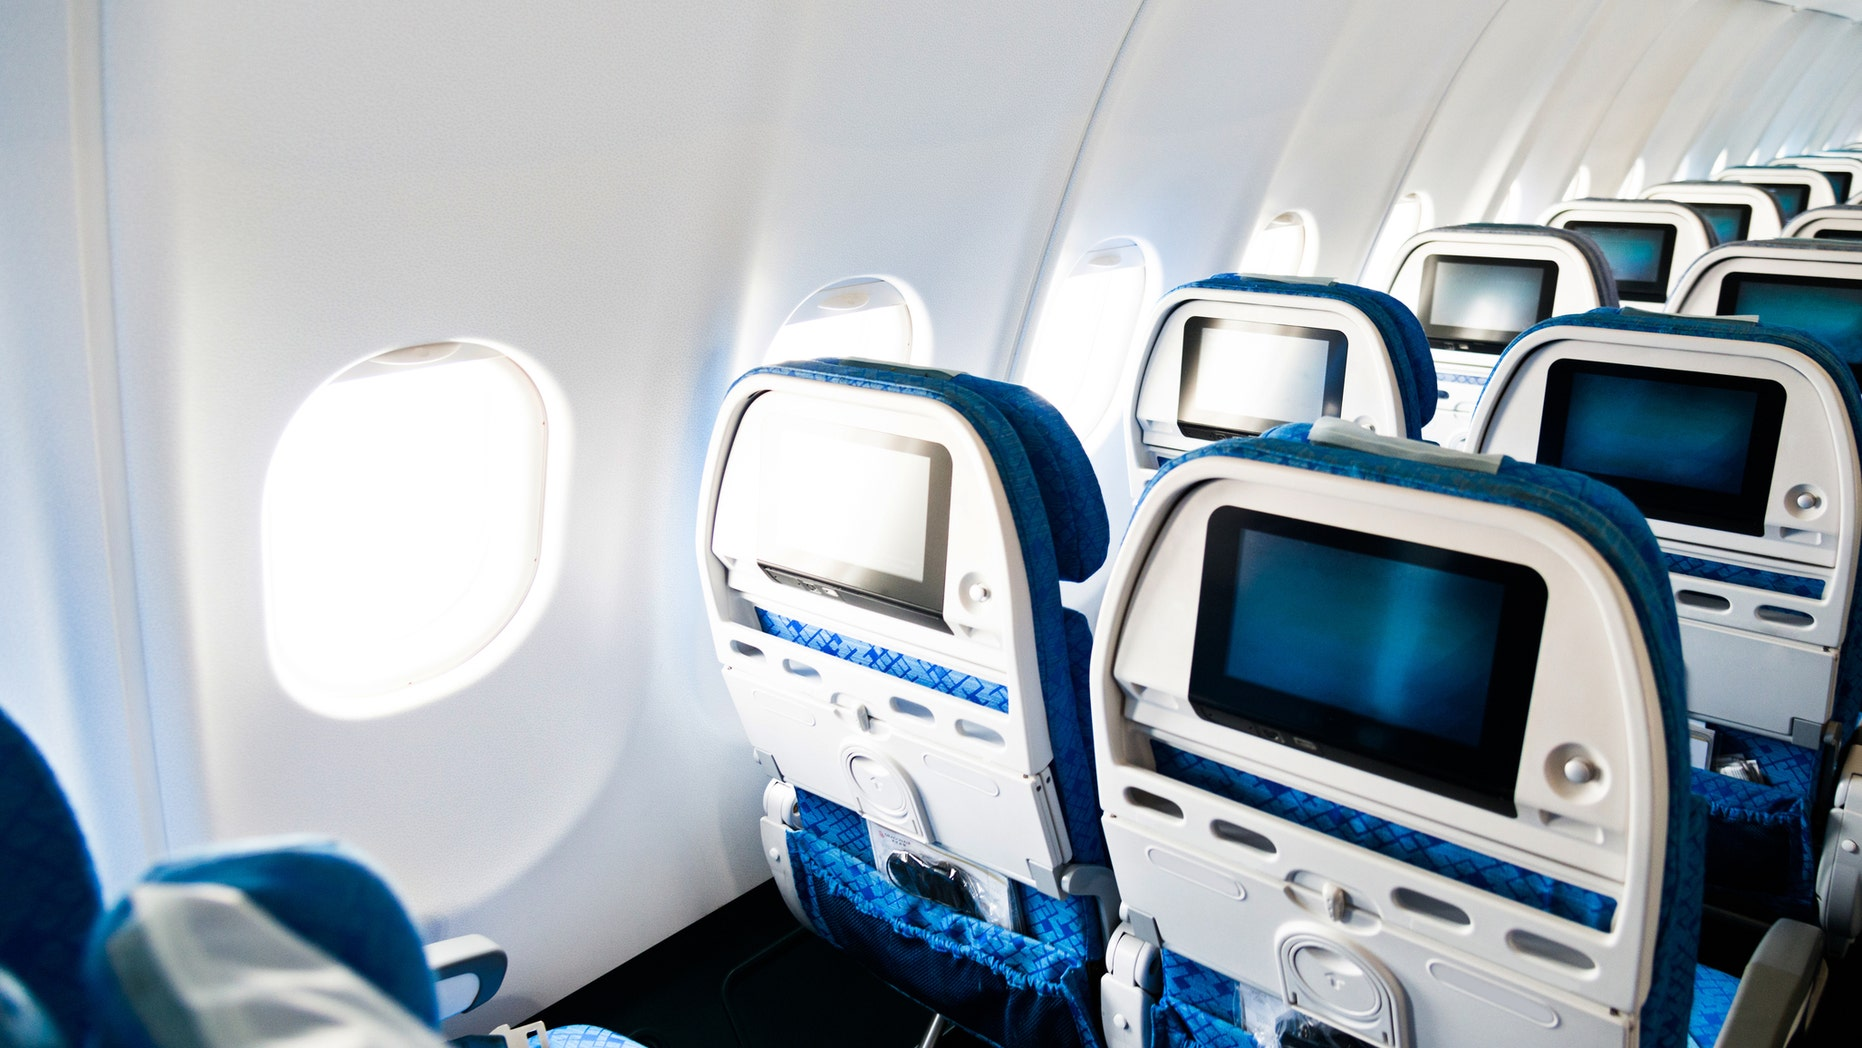 Airplane seat with Tv screens in chairs back.